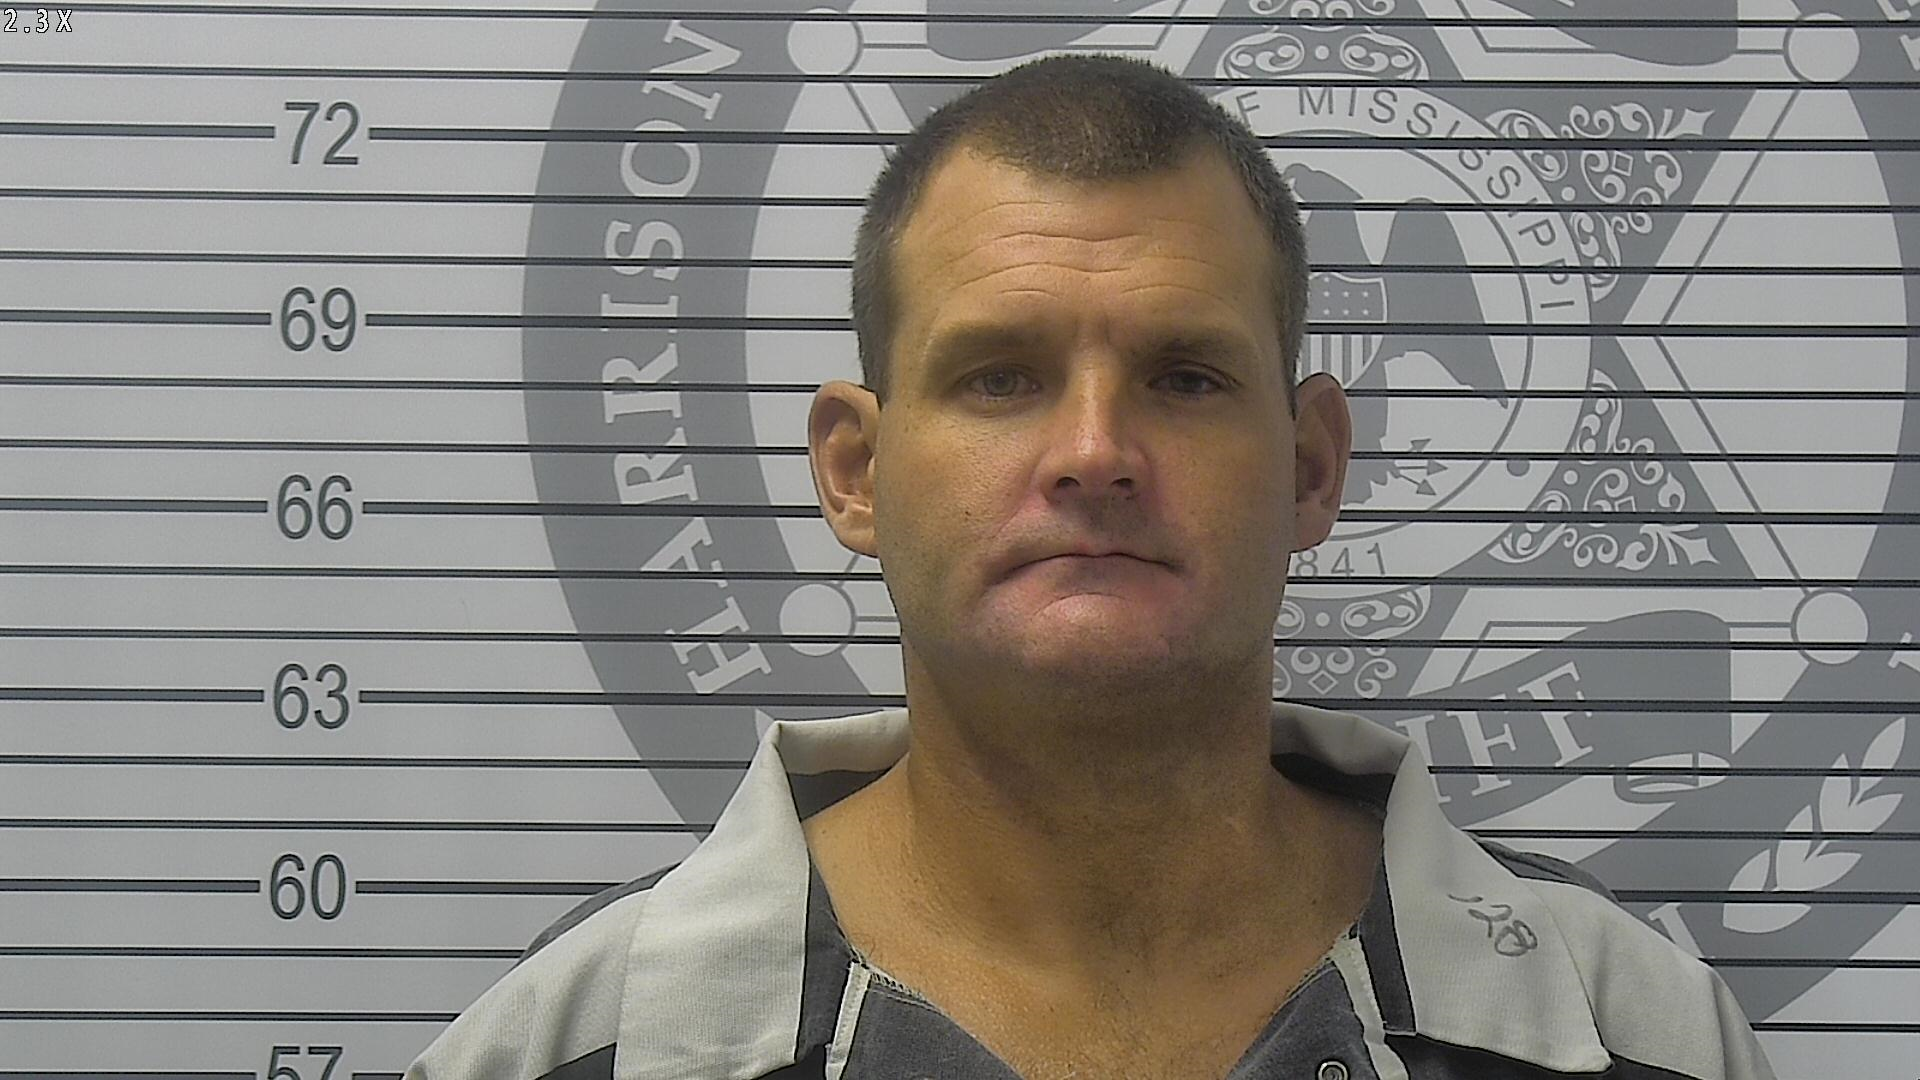 GULFPORT MAN SENTENCED TO 6 YEARS AFTER FOURTH DUI FELONY